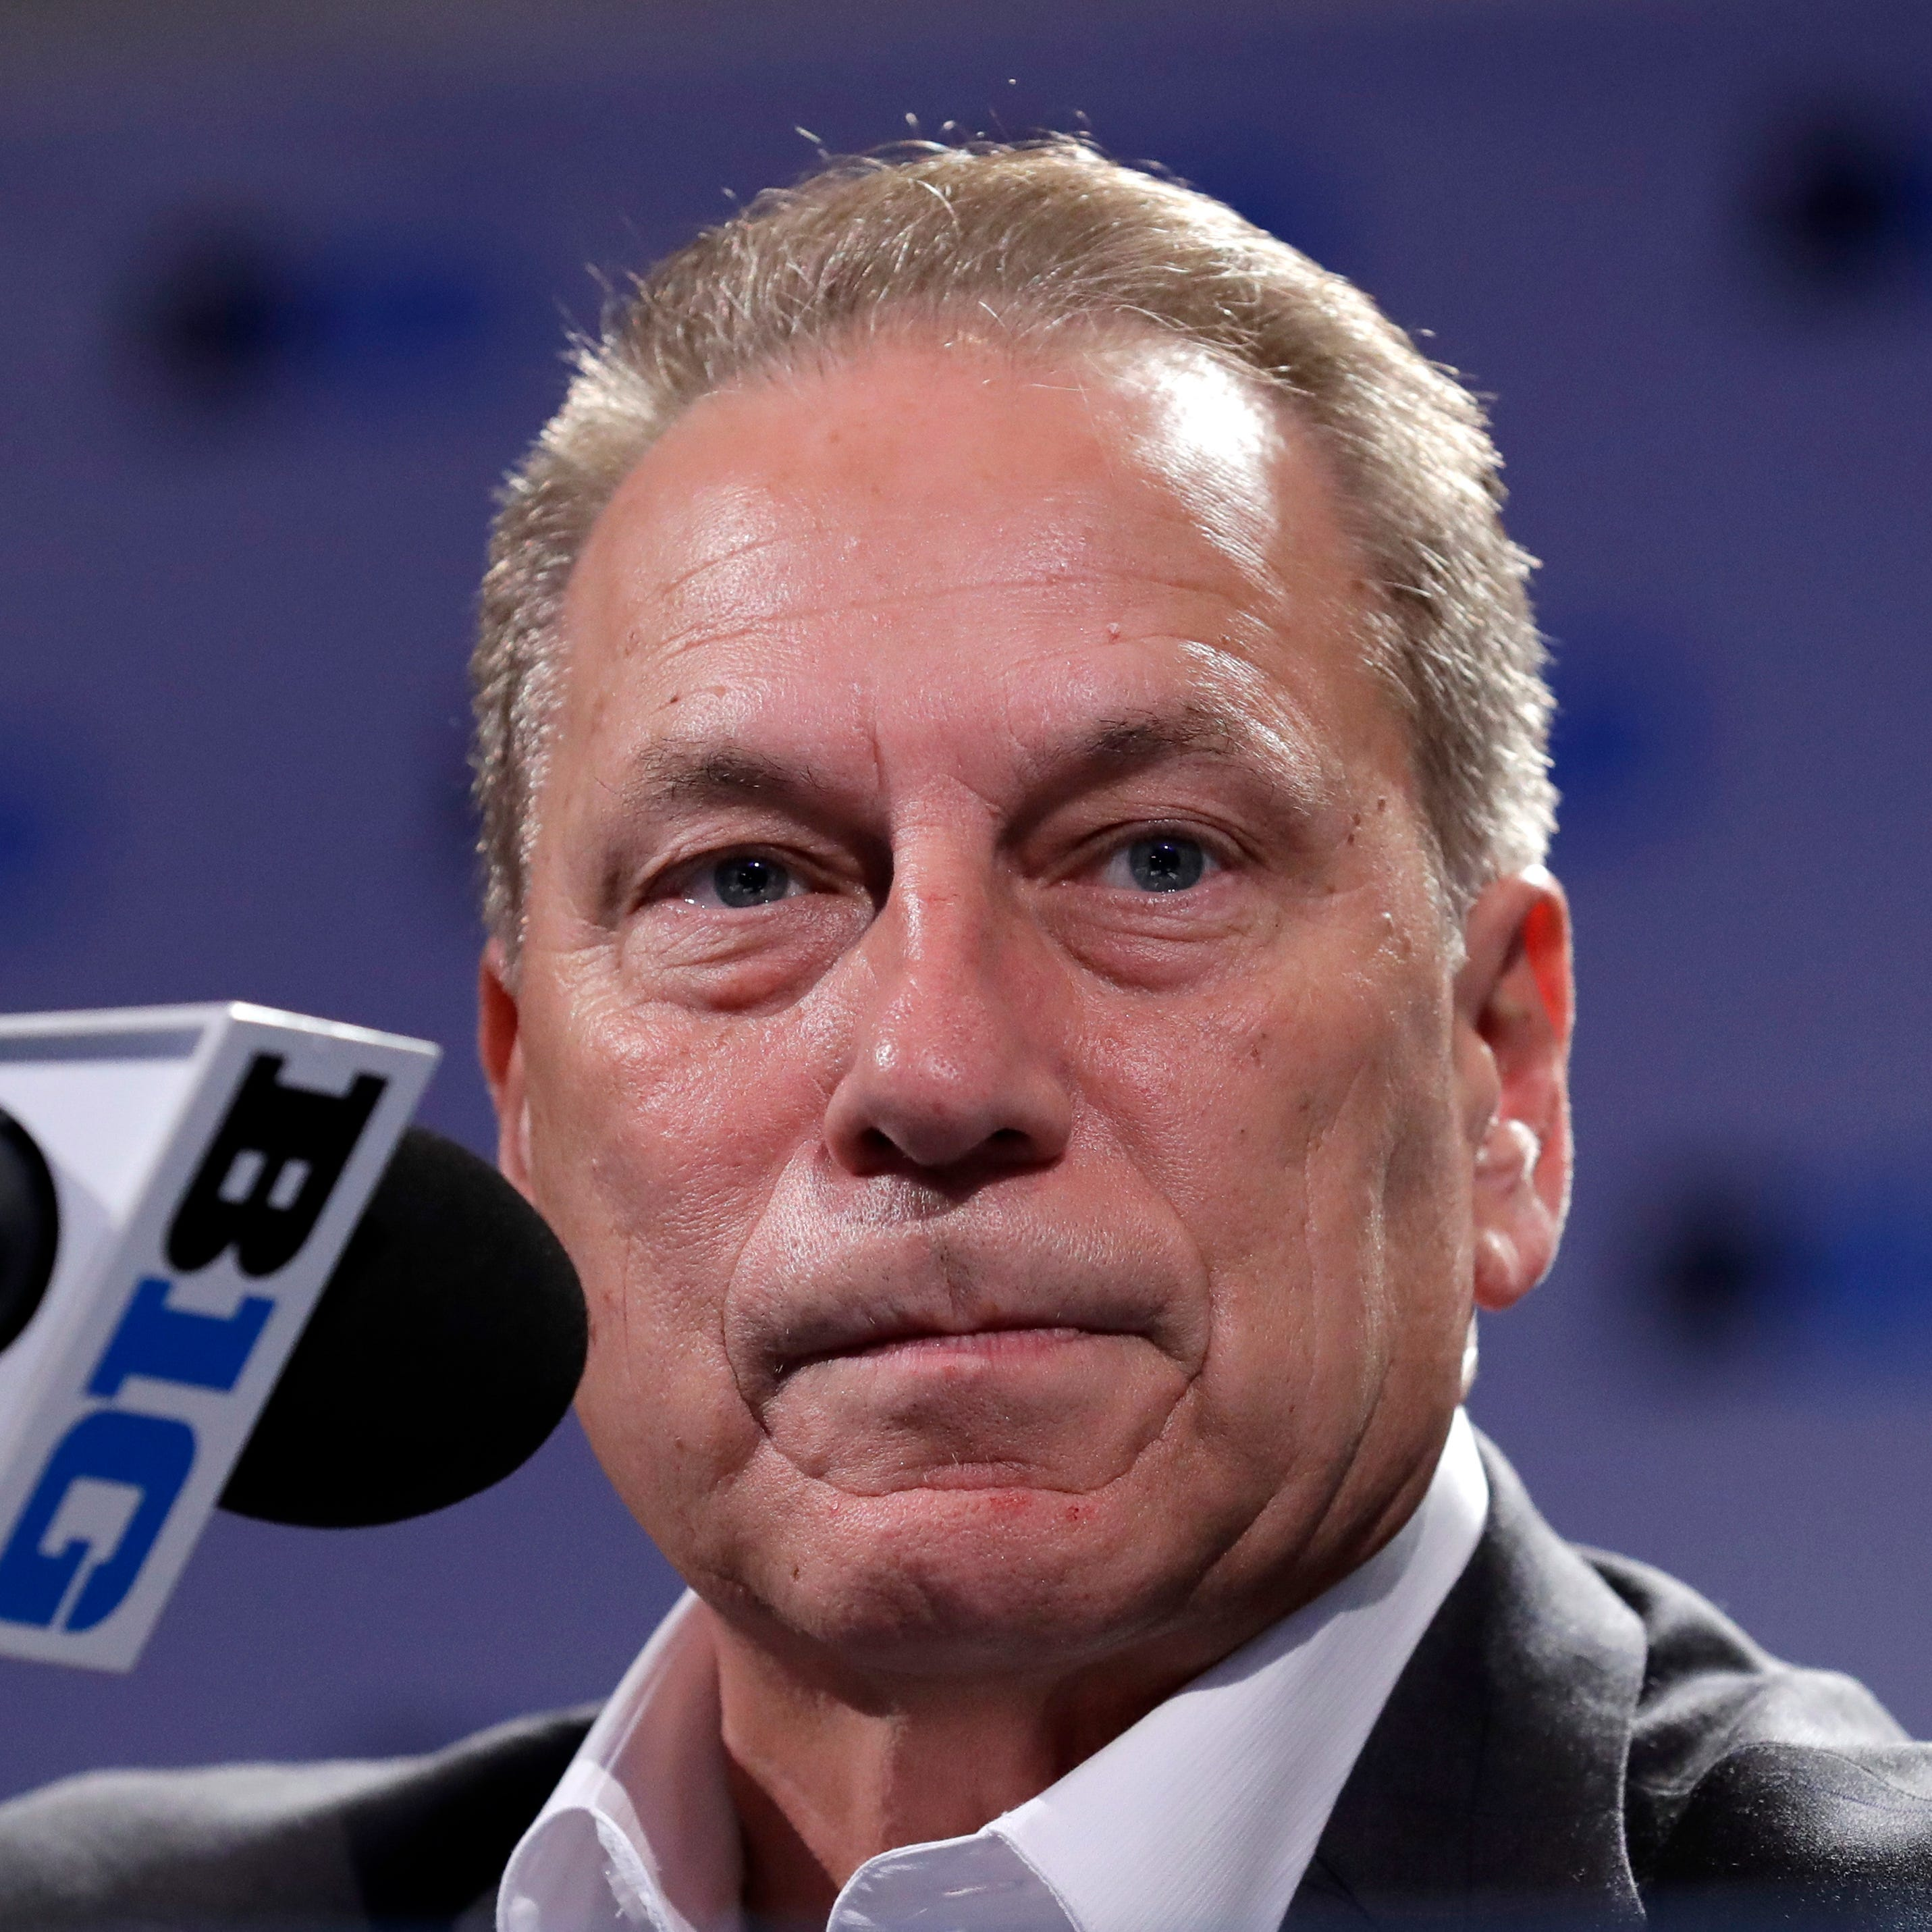 Tom Izzo finally fires back at ESPN's report: 'There were no hidden secrets'